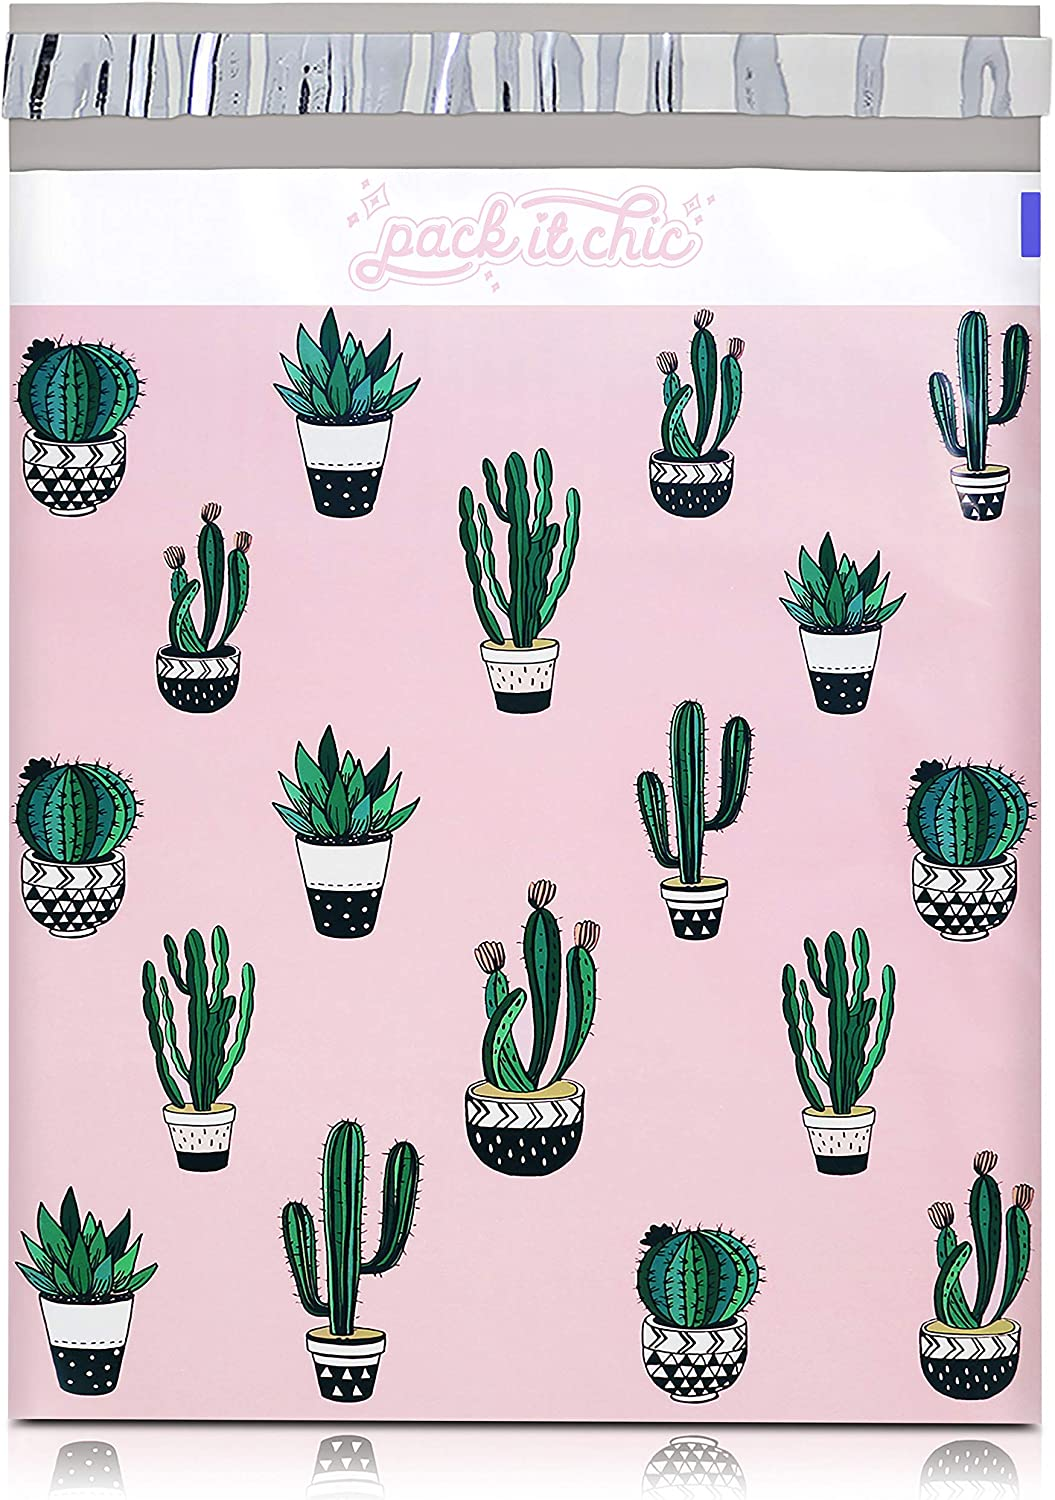 Pack It Chic - 10X13 (100 Pack) Cactus & Succulents Poly Mailer Envelope Plastic Custom Mailing & Shipping Bags - Self Seal (More Designs Available) : Office Products